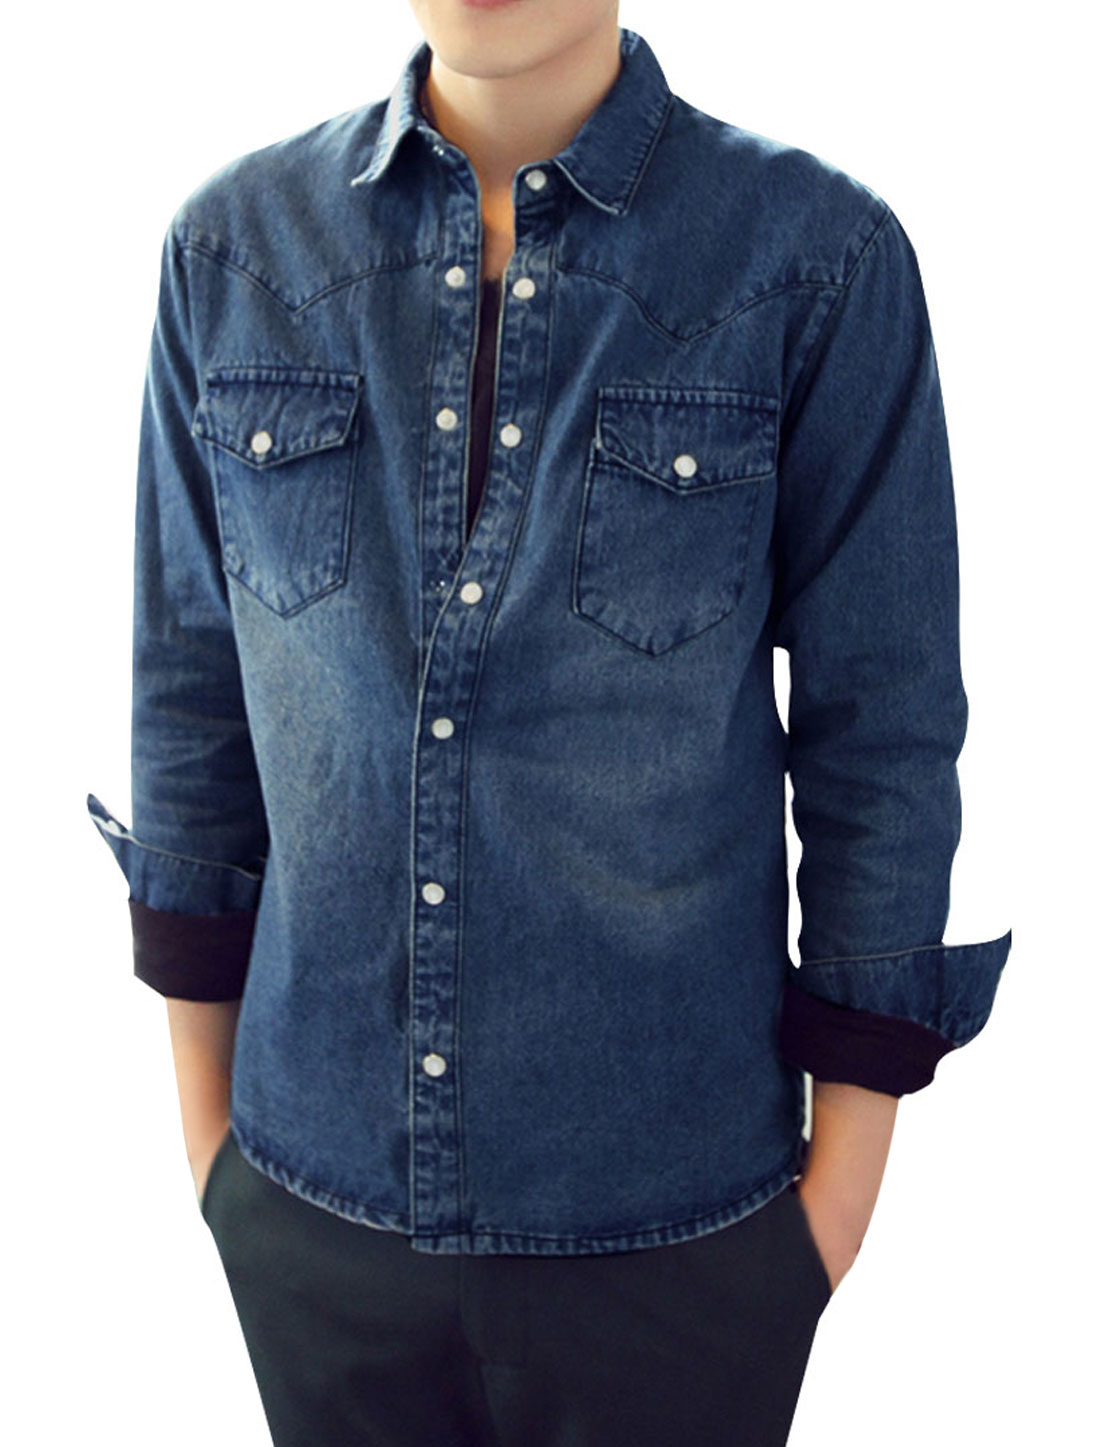 Men Long Sleeve Pockets Front Button Up Blue Jean Shirt M